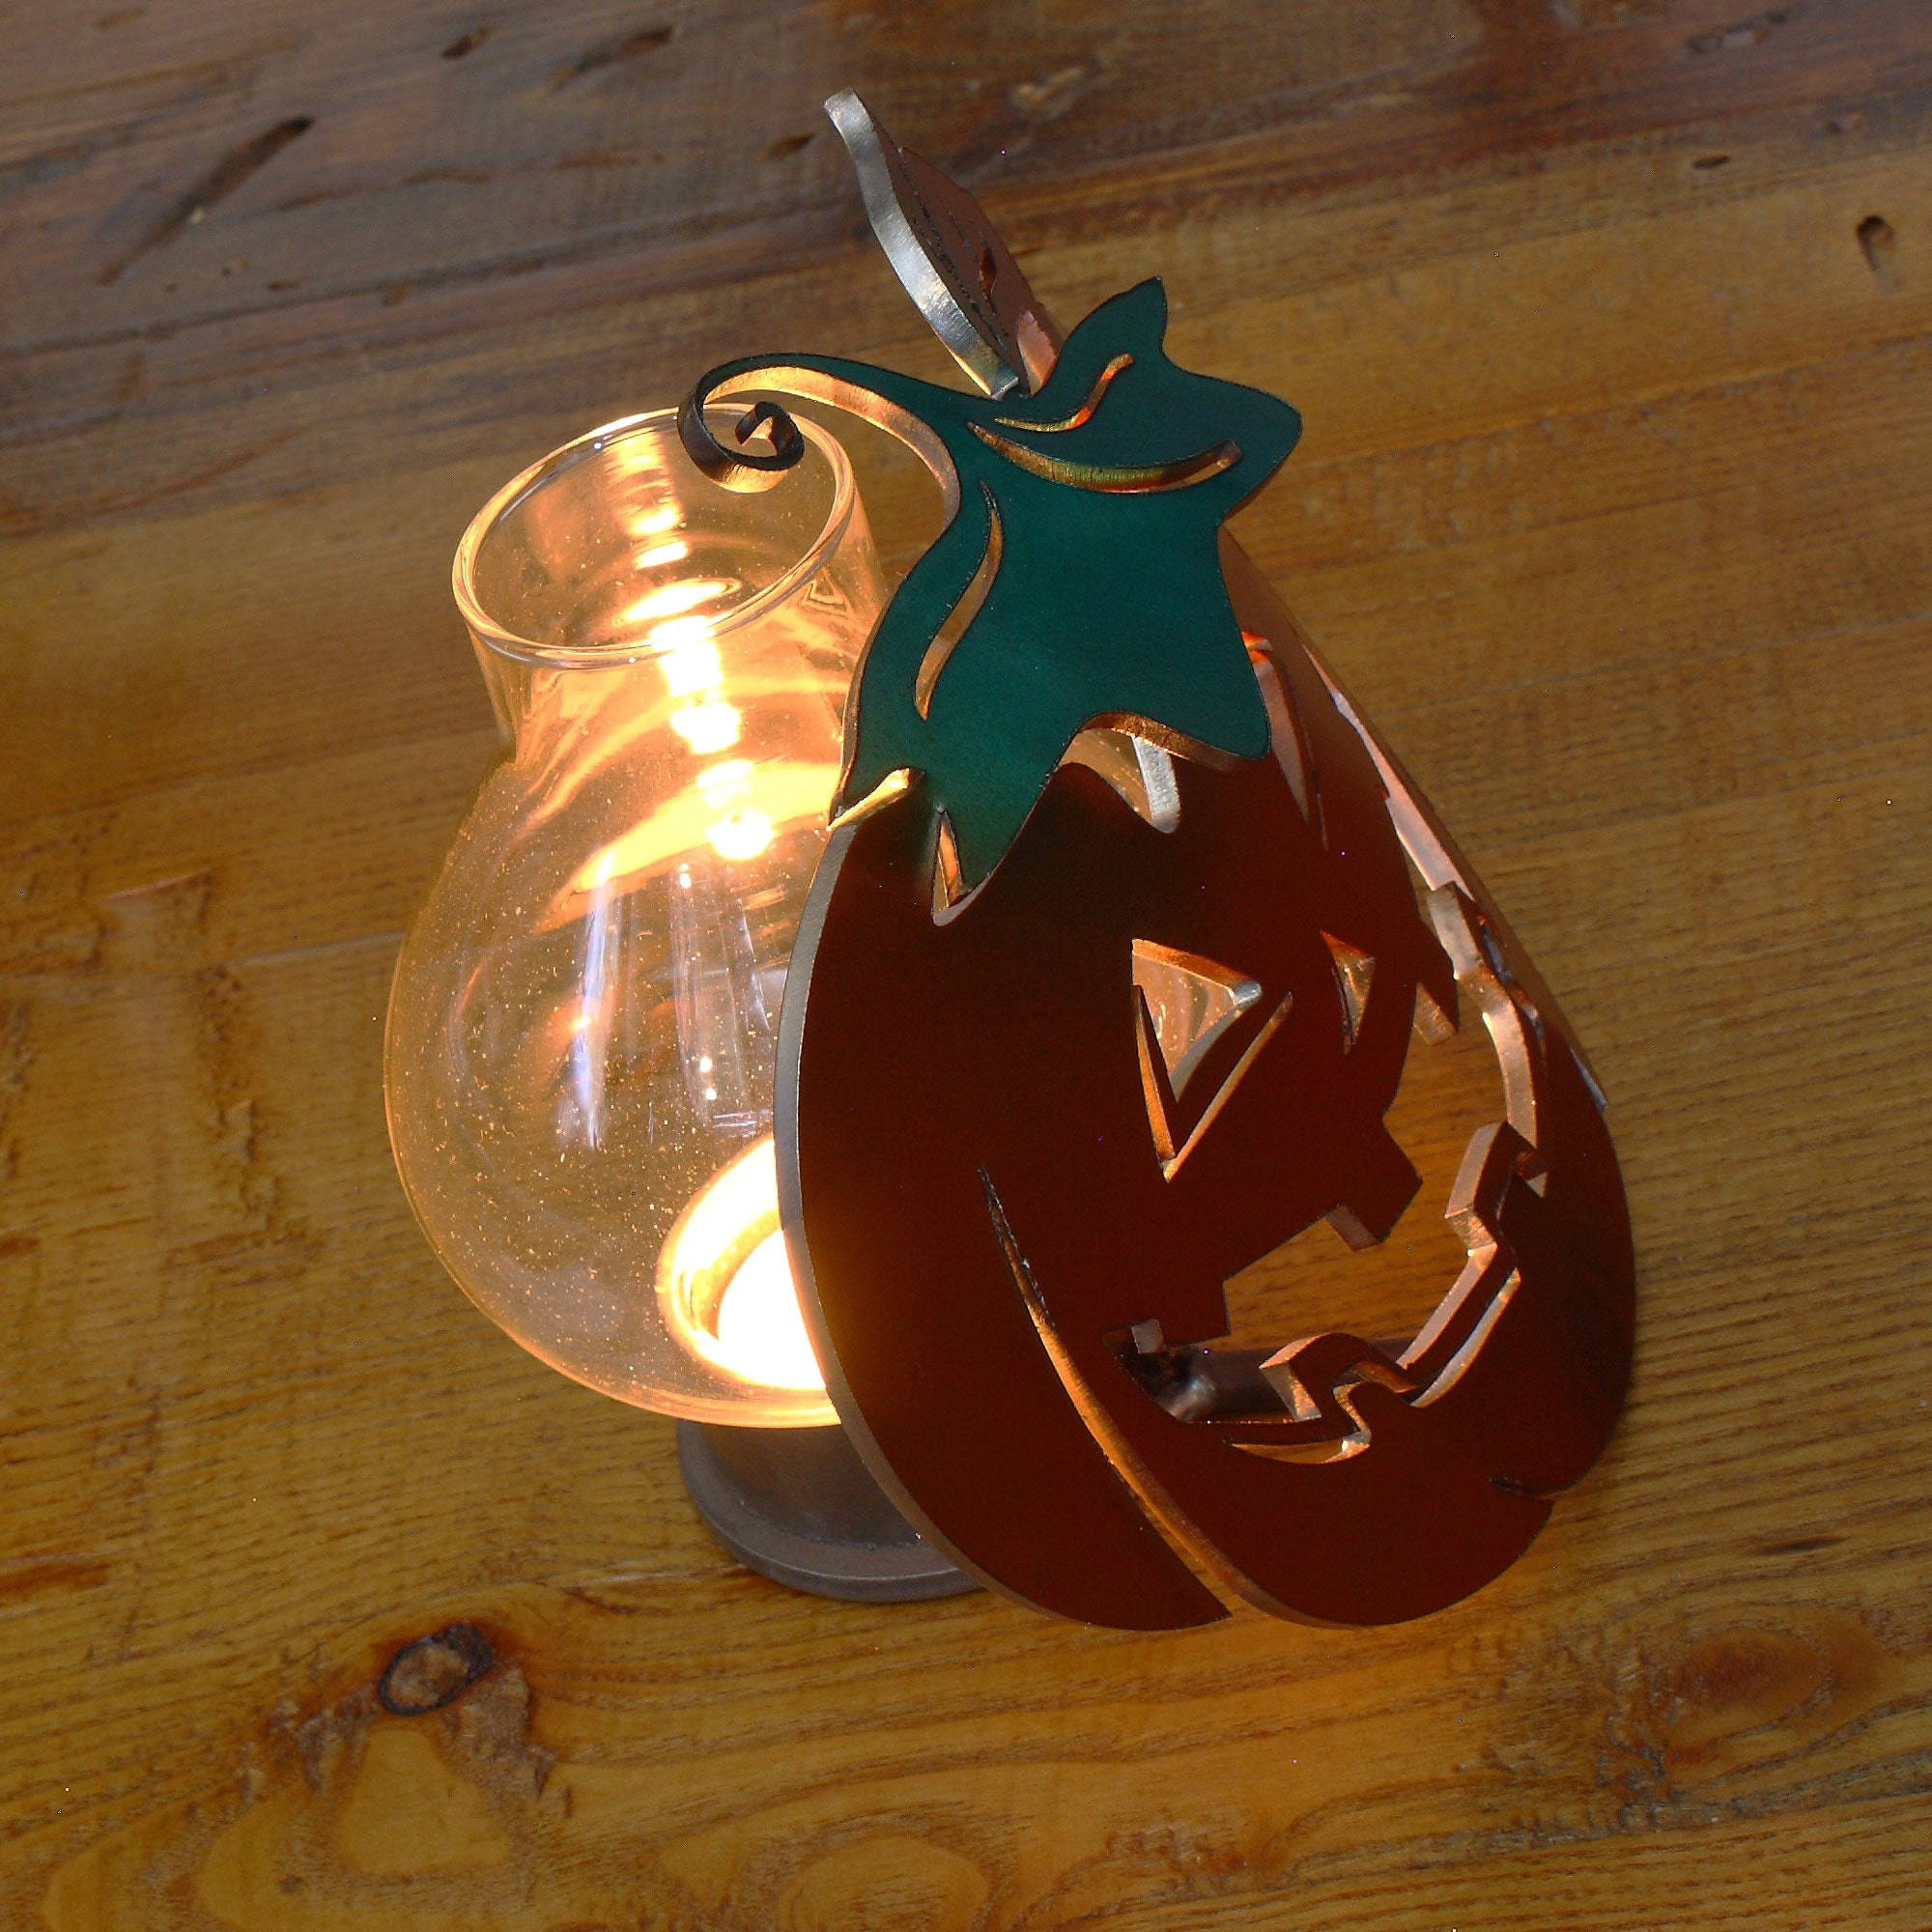 Metal Art Painted Pumpkin candle holder, Halloween pumpkin, Halloween decorations, Halloween candles, Halloween decor